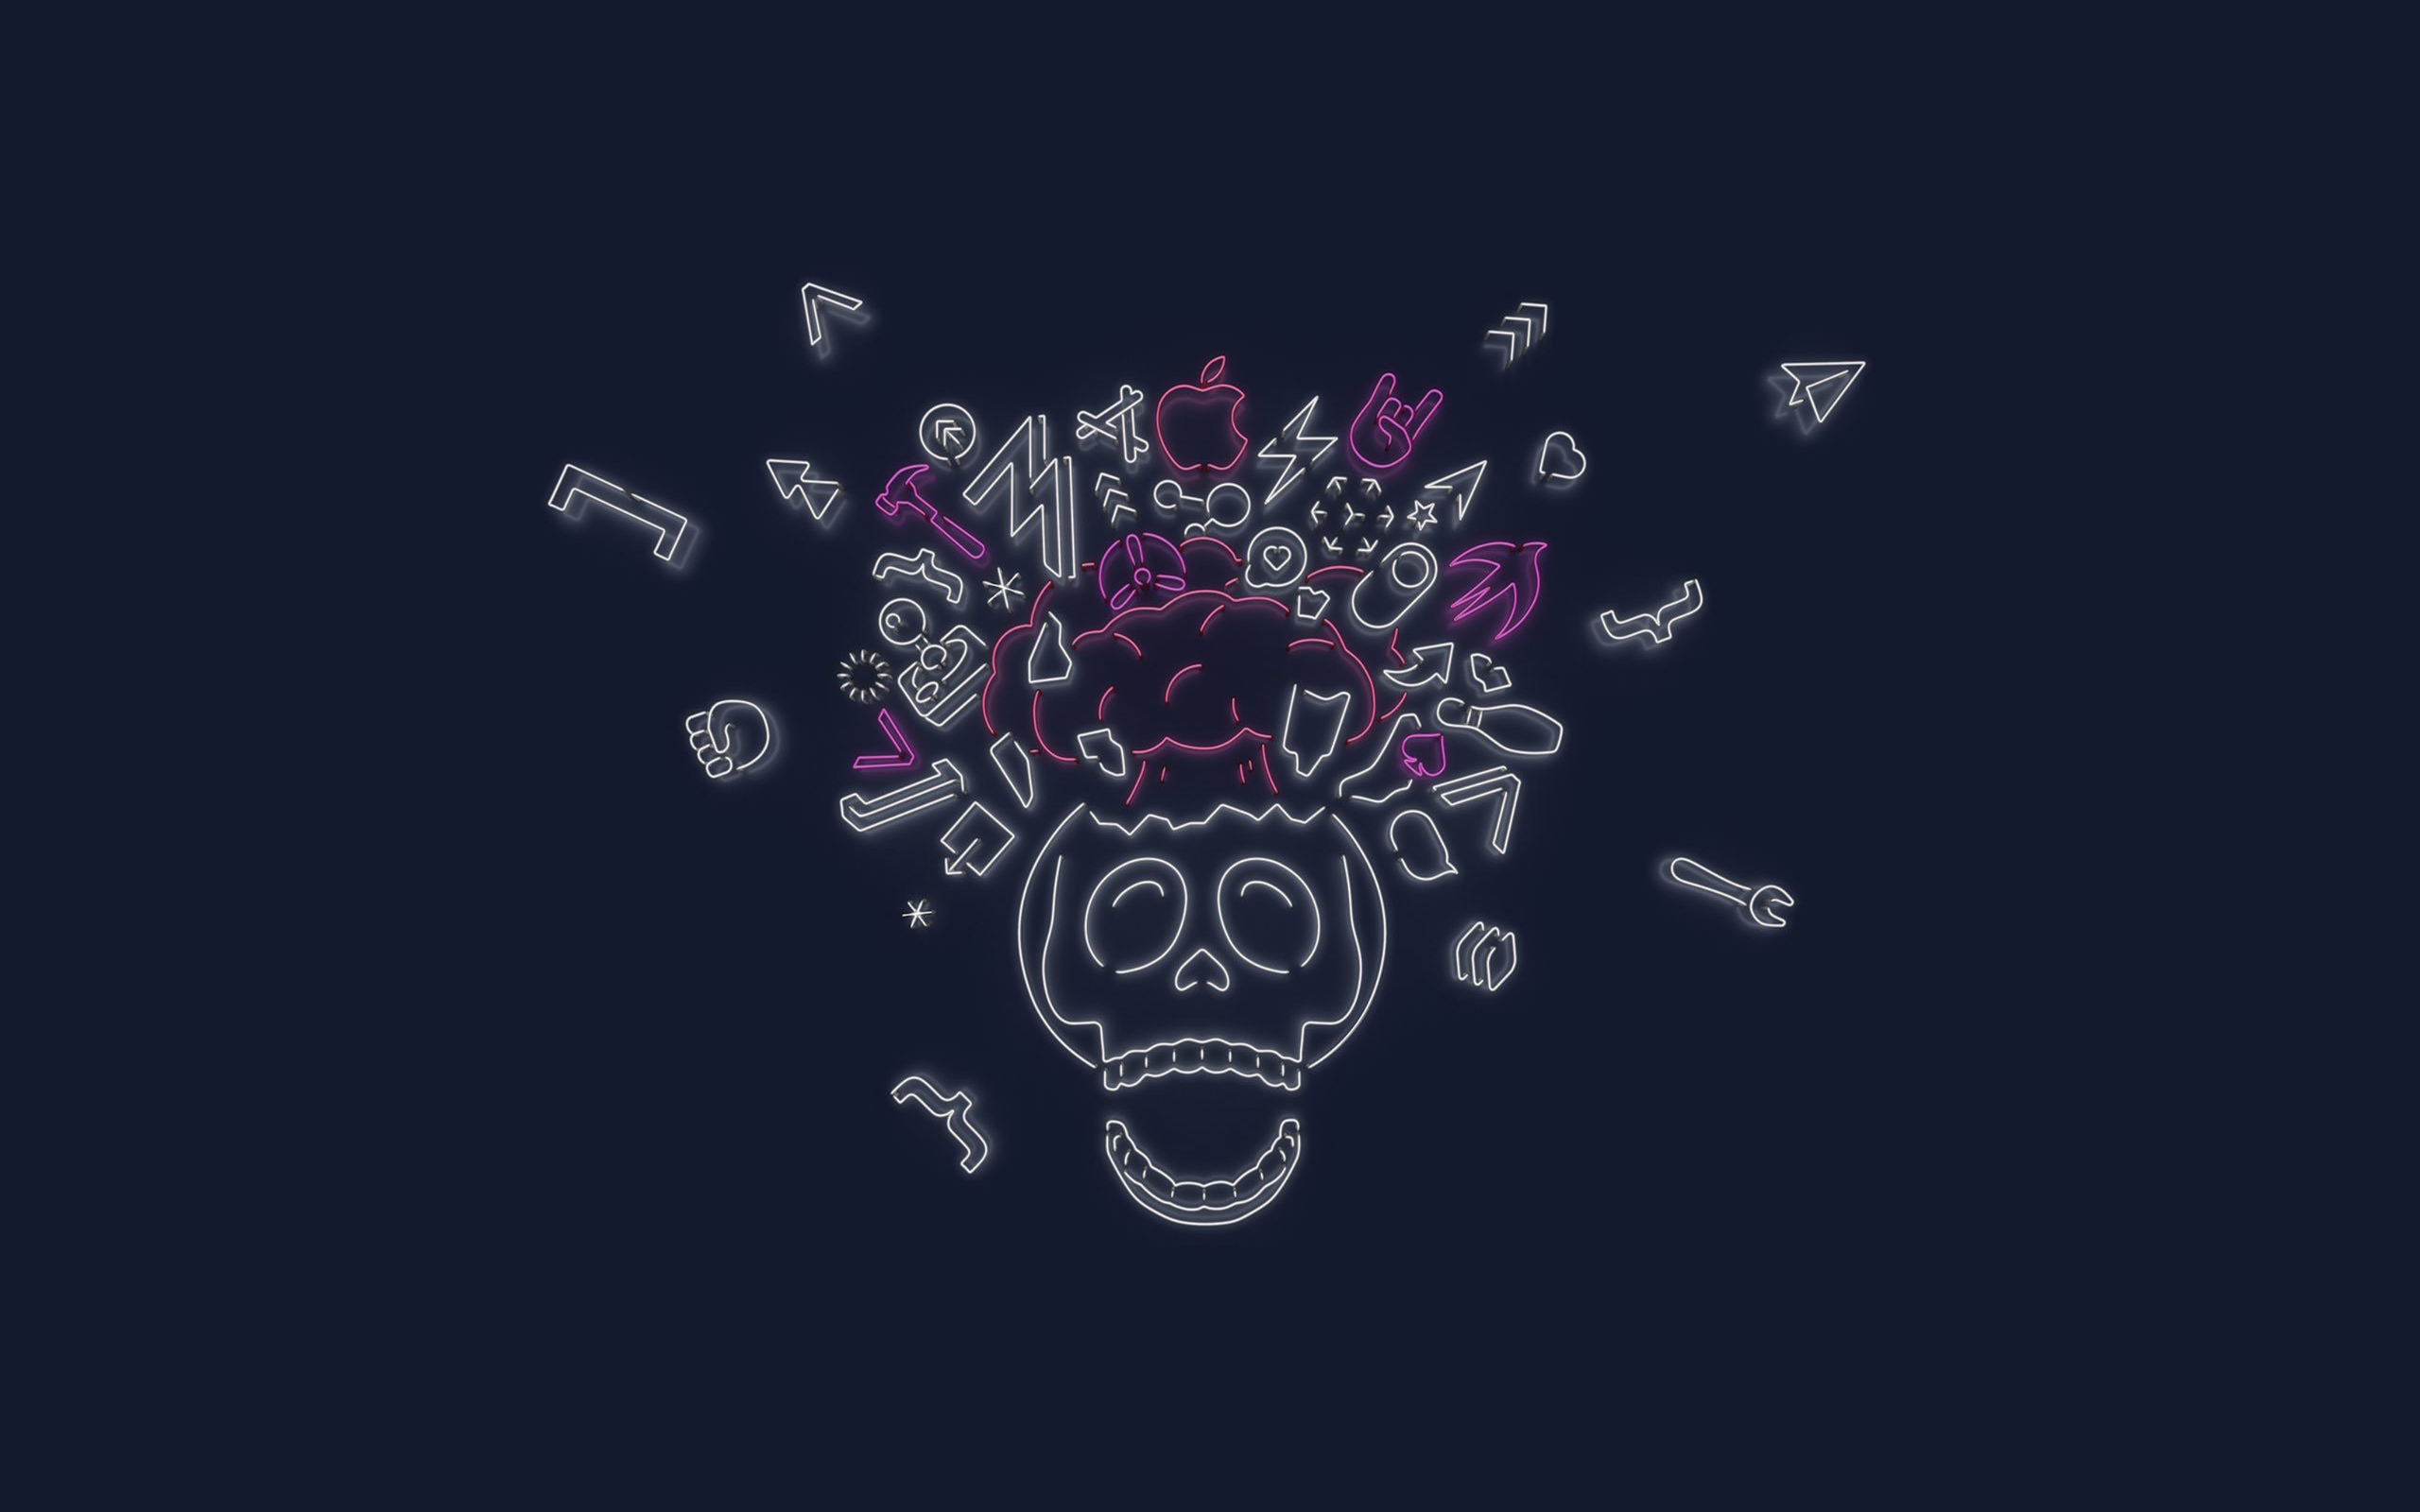 WWDC 2019 wallpapers 2560x1600